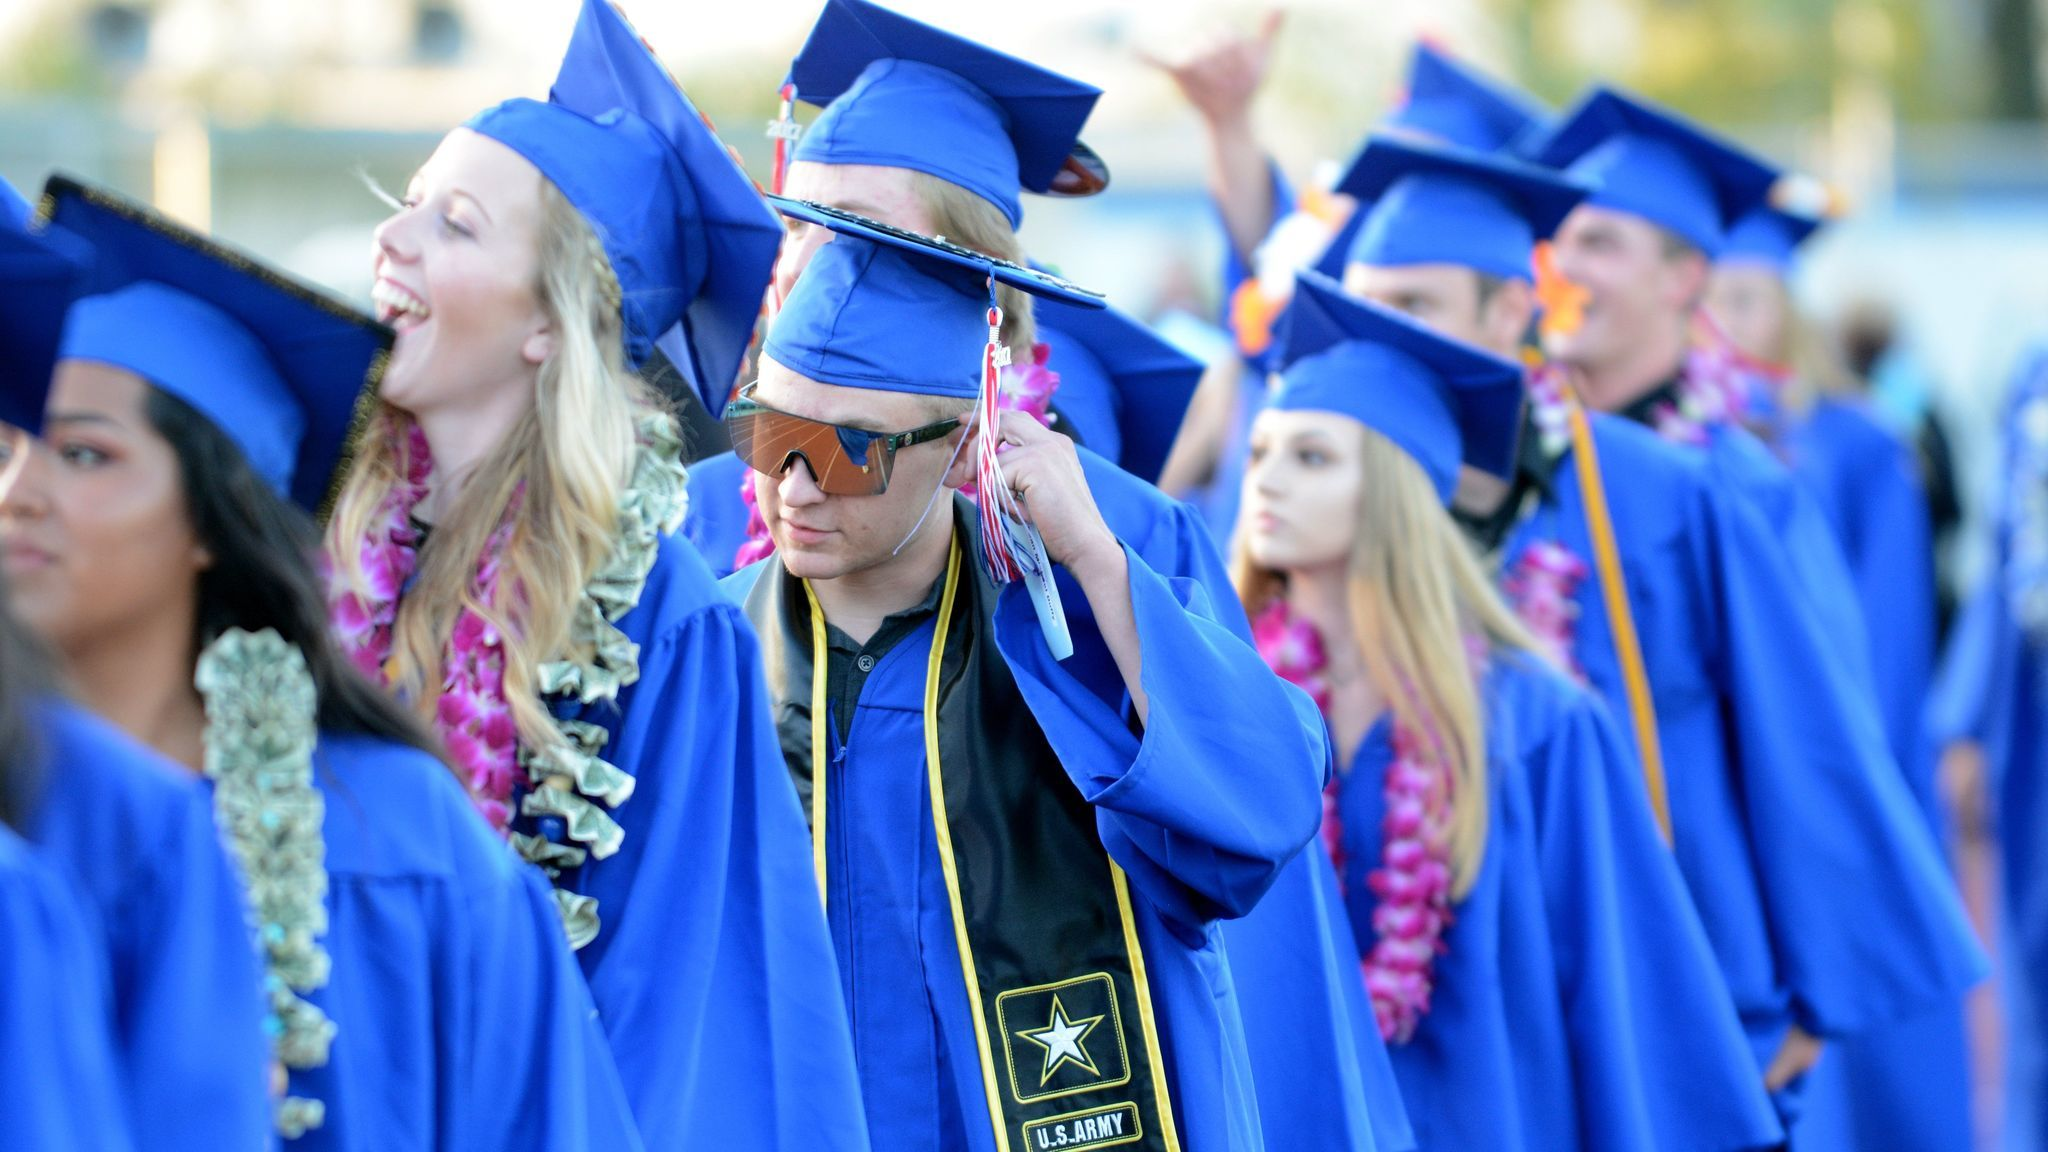 Sean Duffy adjusts his tassel as classmates check the stands for familiar faces when they enter the stadium.